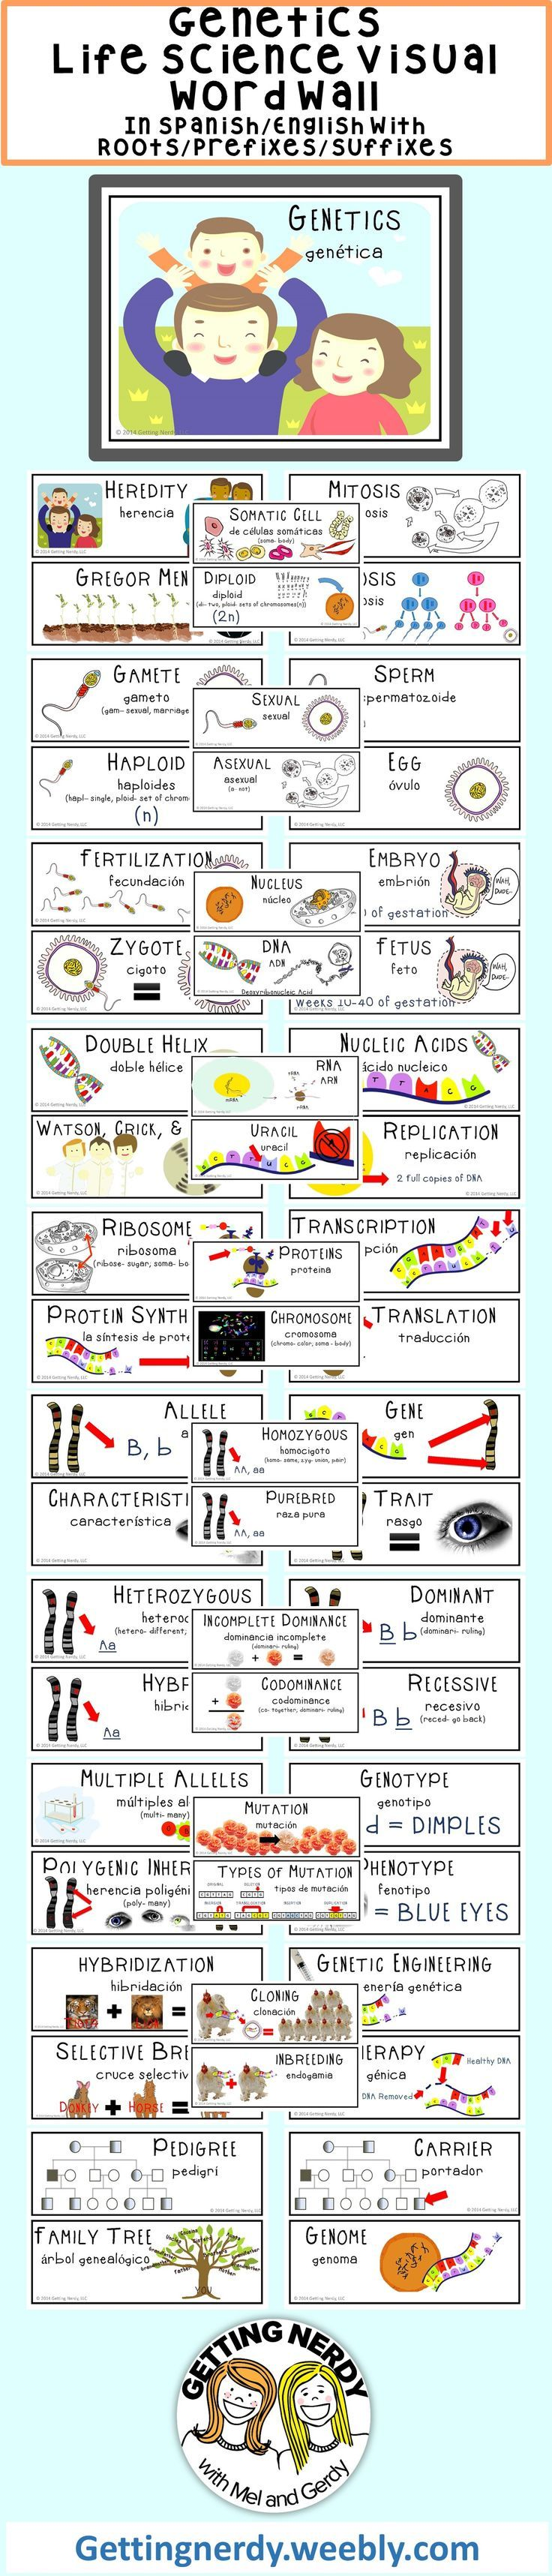 worksheet Genetics Vocabulary Worksheet genetics word wall students walls and vocabulary in science has improved since using this colorful wall